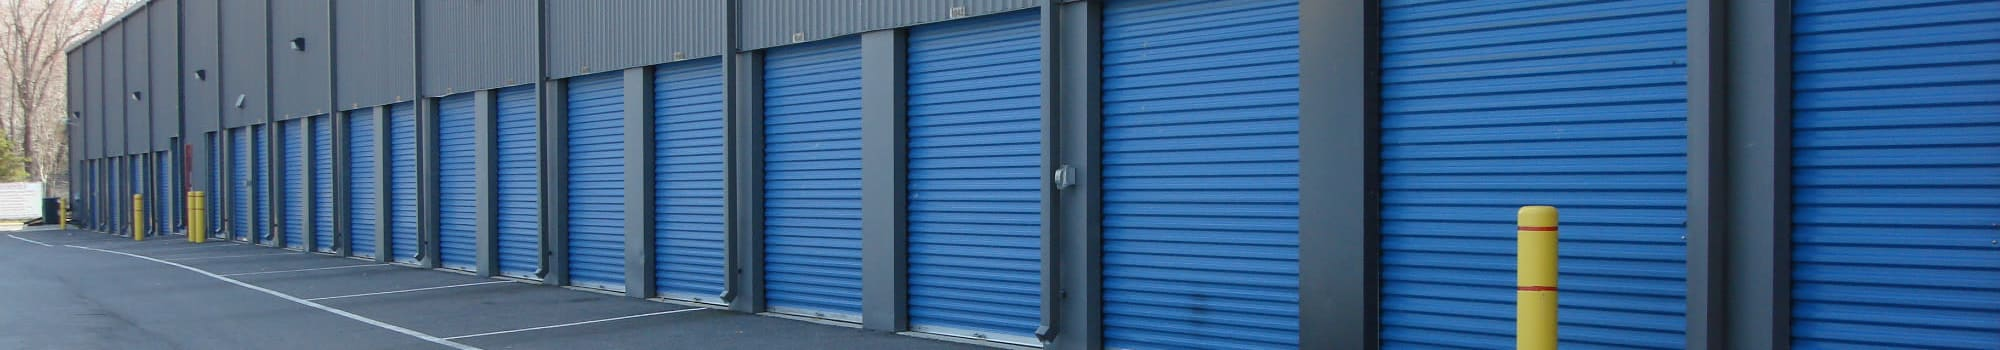 Contact us for your self storage needs in Middle River